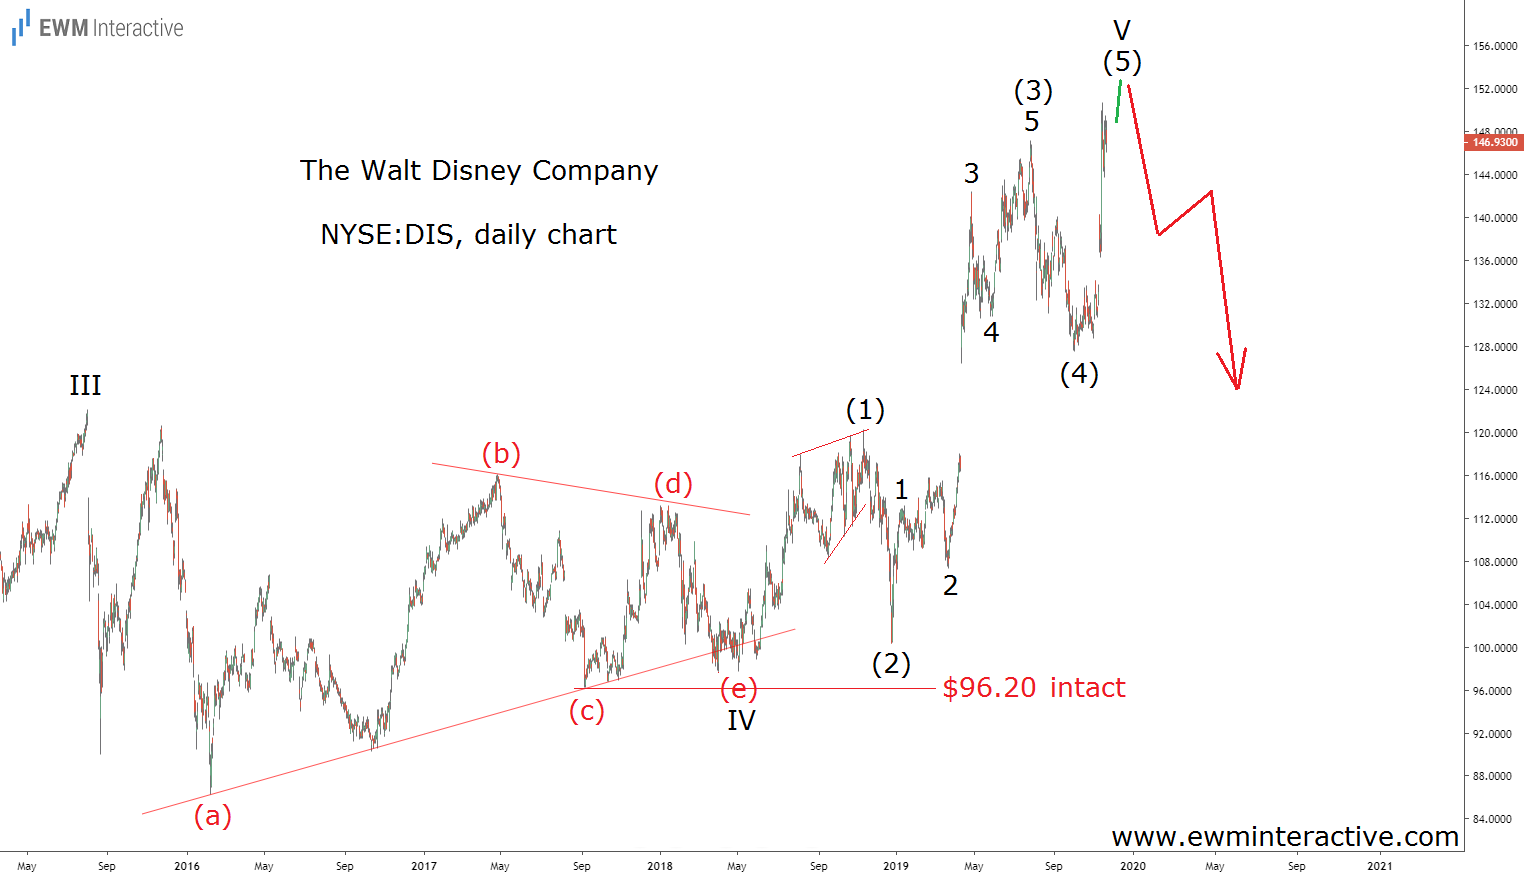 Disney stock climbs to $150 in fifth wave